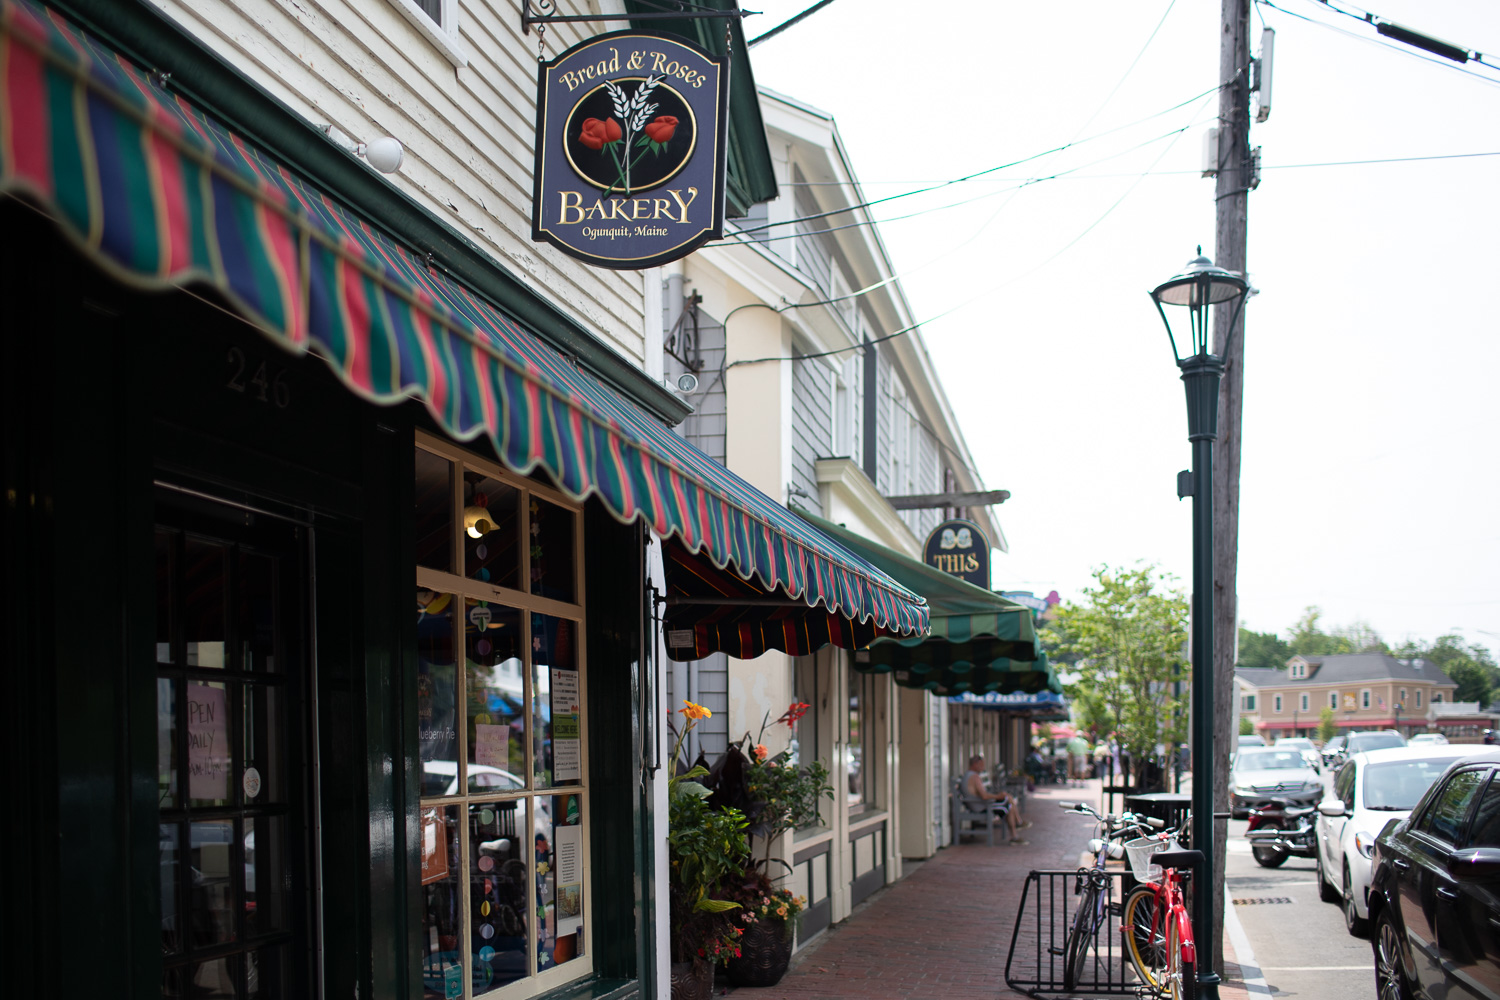 The Bread & Roses Bakery  in downtown Ogunquit. Recommended stop for tasty treats and/or coffee.